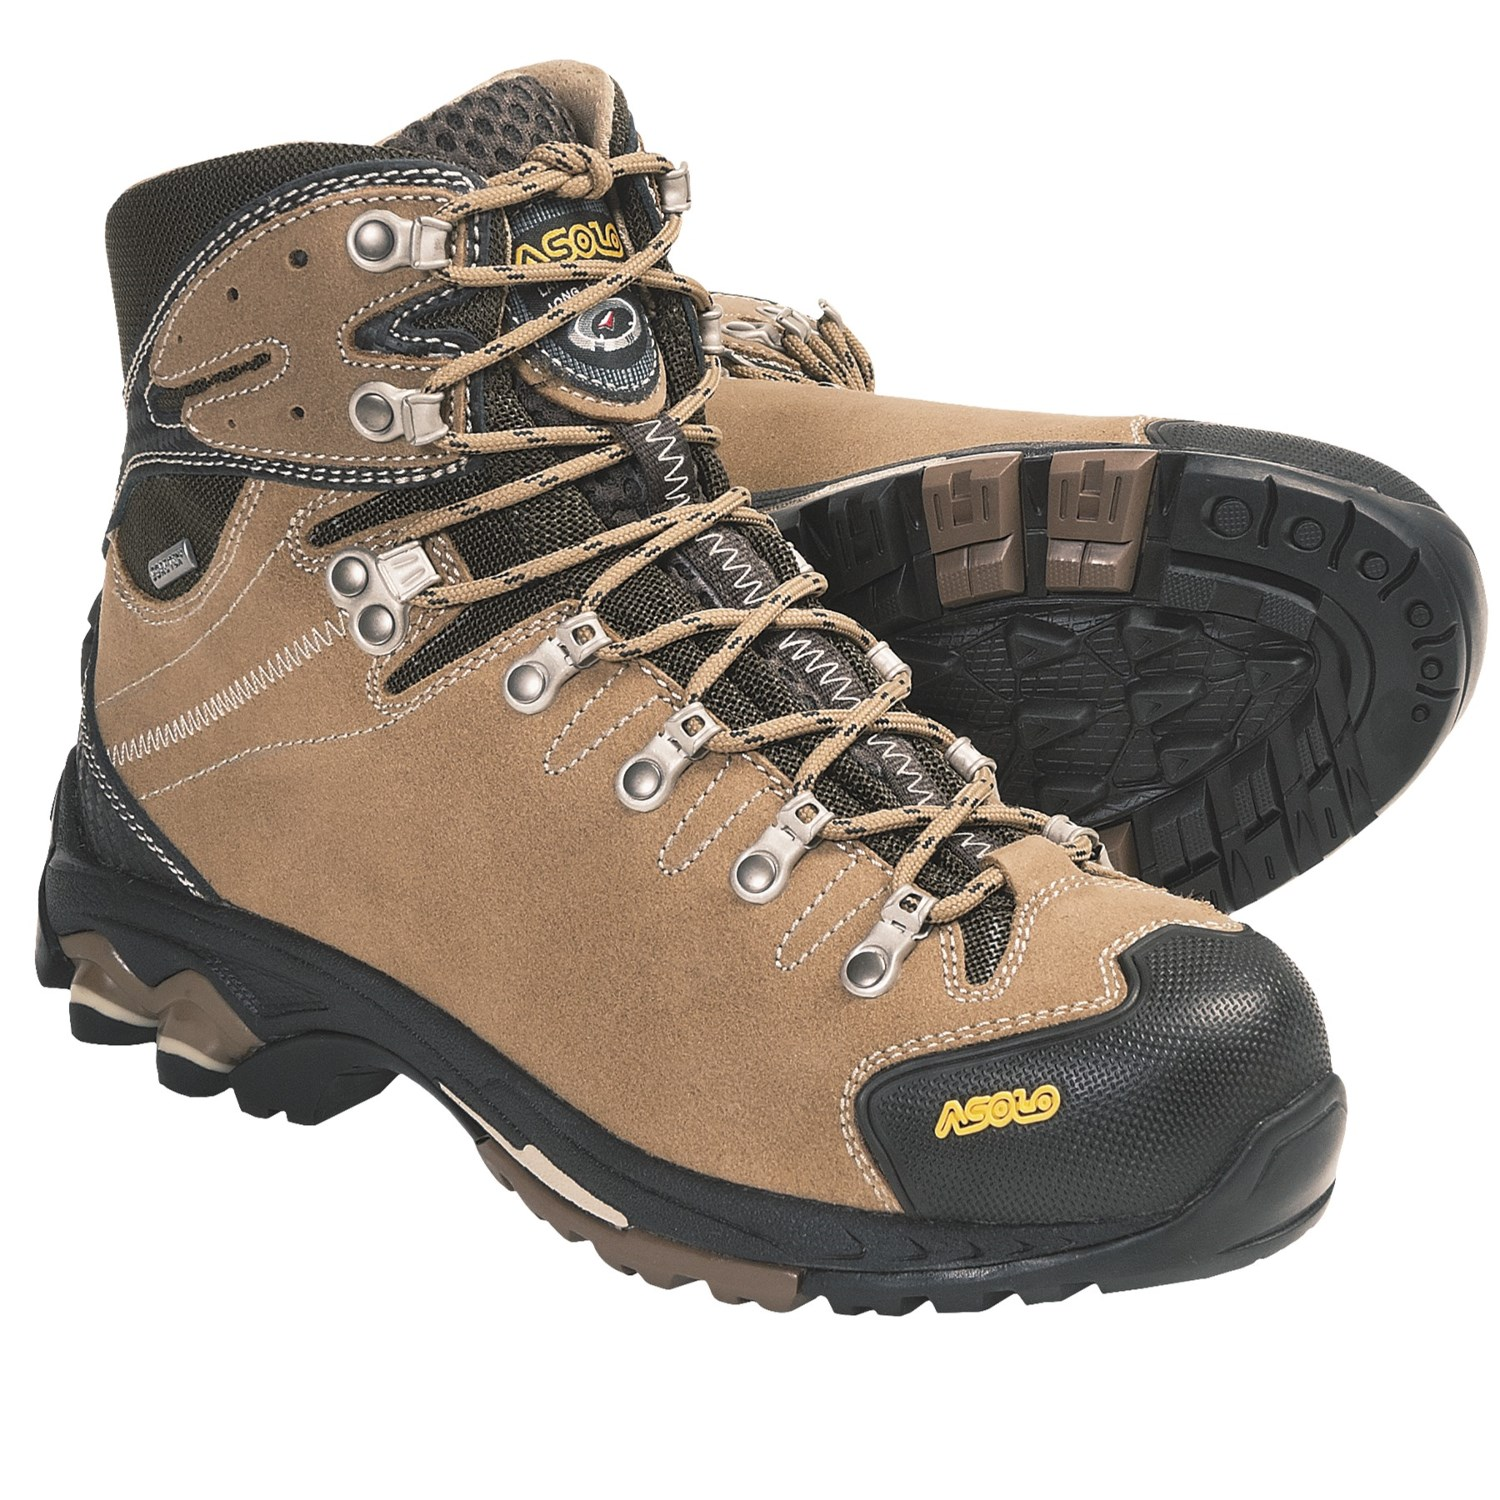 Model Womenu0026#39;s Vasqueu00ae Sundowner GORE - TEXu00ae Backpacking Boots - 115955 Hiking Boots U0026 Shoes At ...